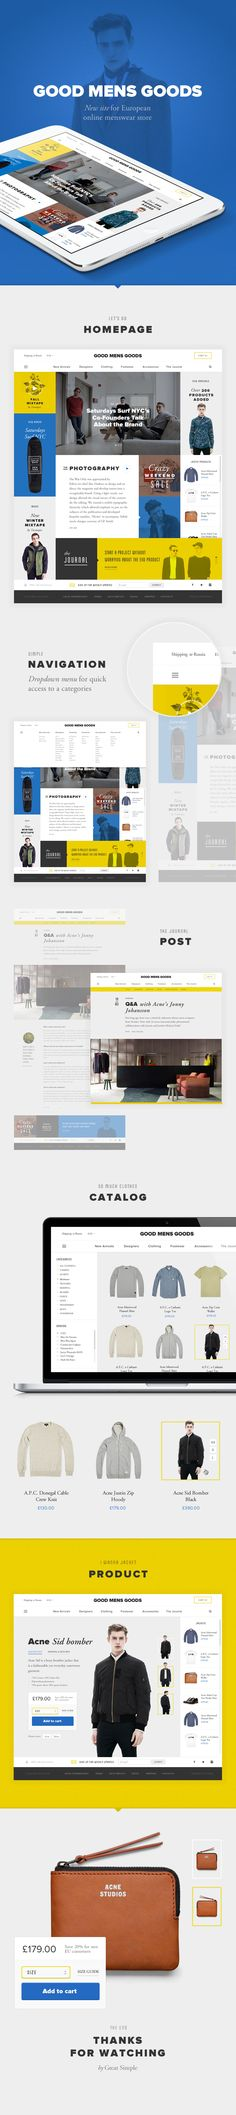 Good Mens Goods Website by Great Simple → more on designvertise.com